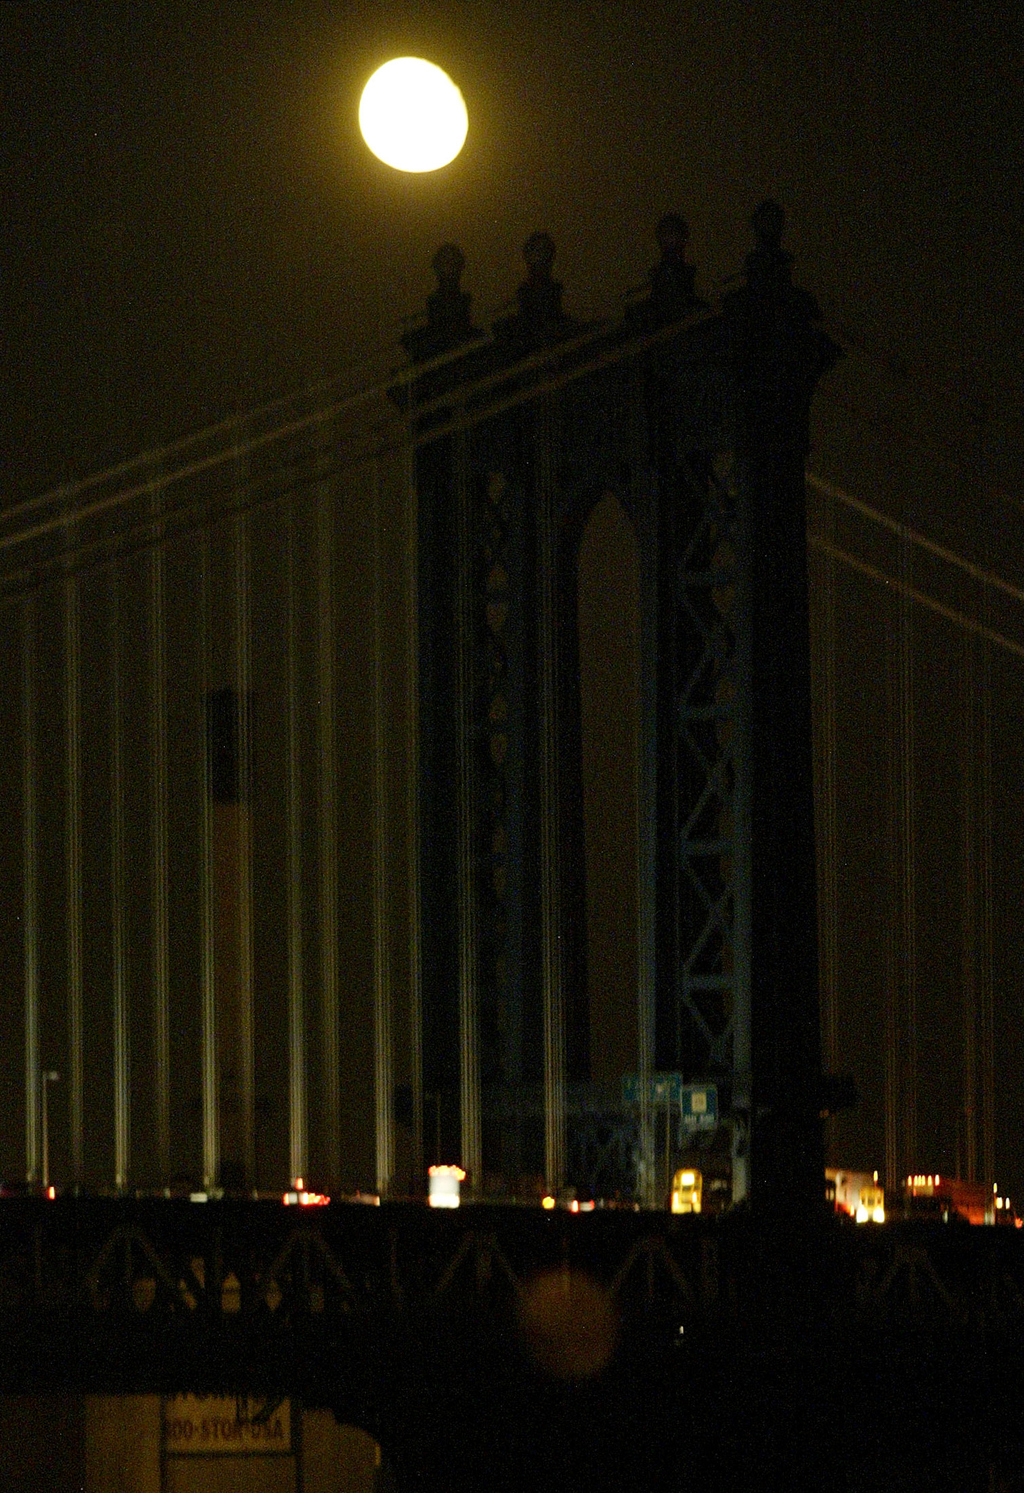 19 Photos That Will Transport You Back To The Northeast Blackout Of 2003